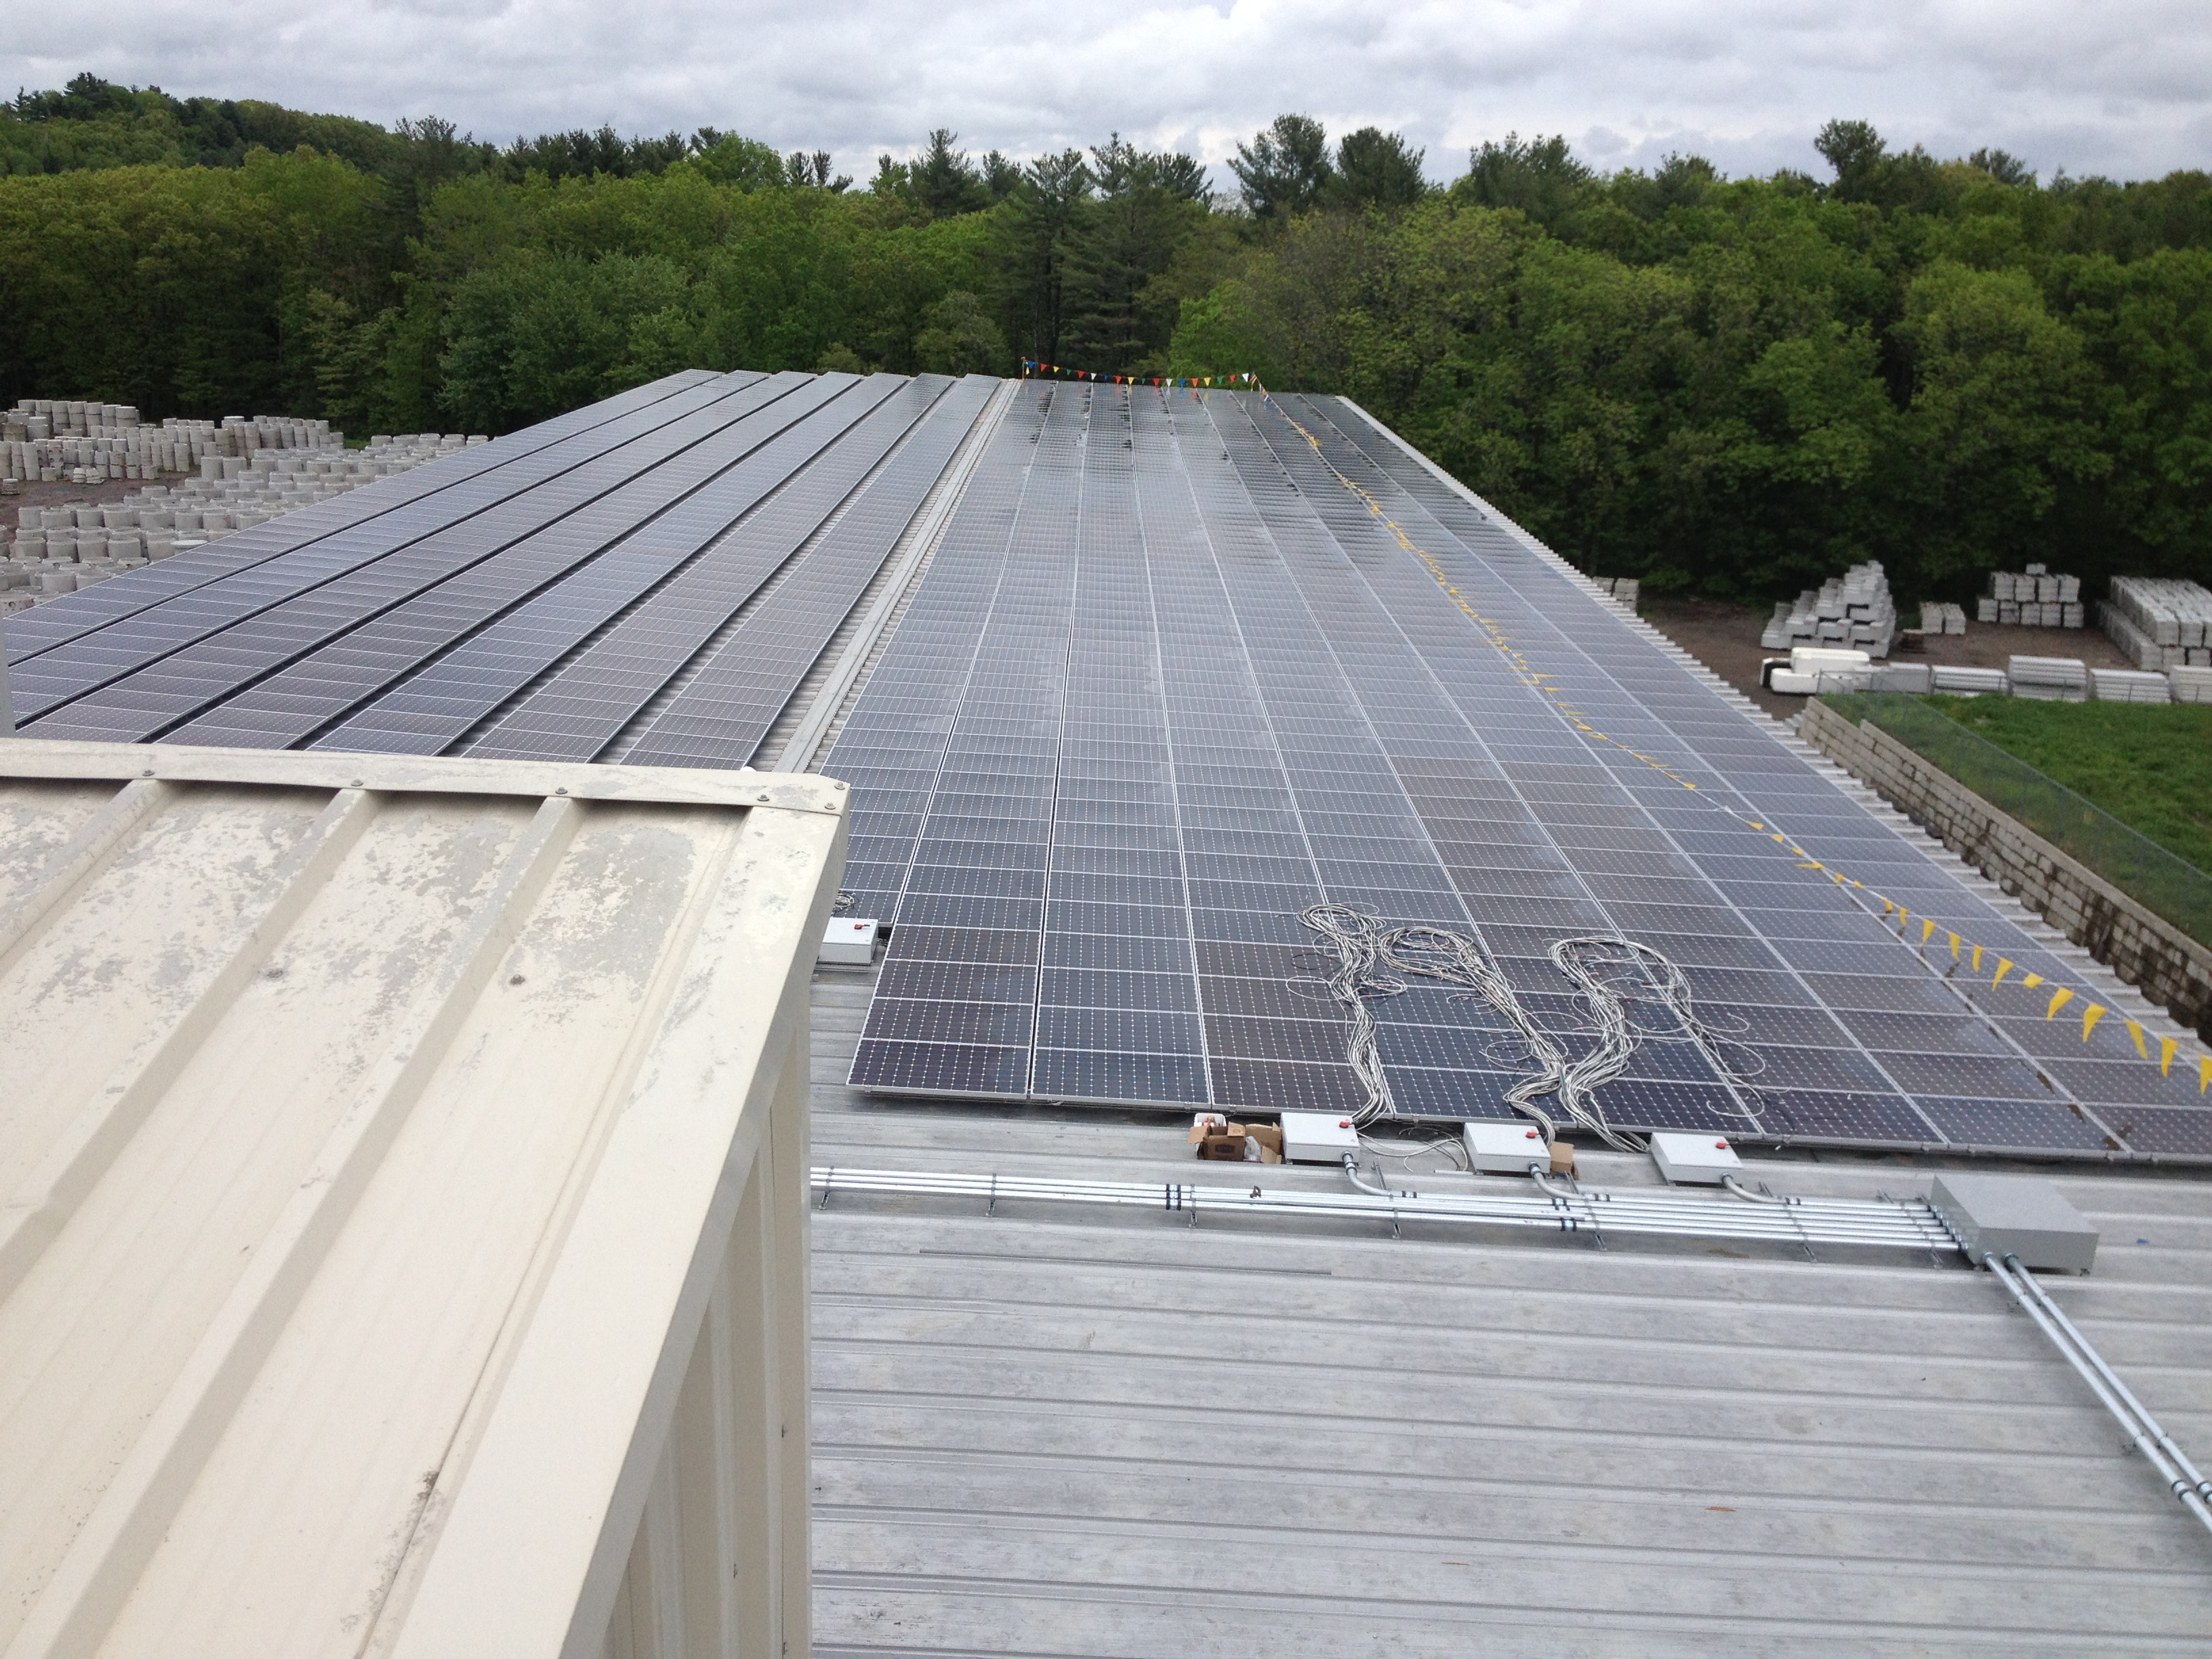 The 389 kW array installed by Beaumont Solar